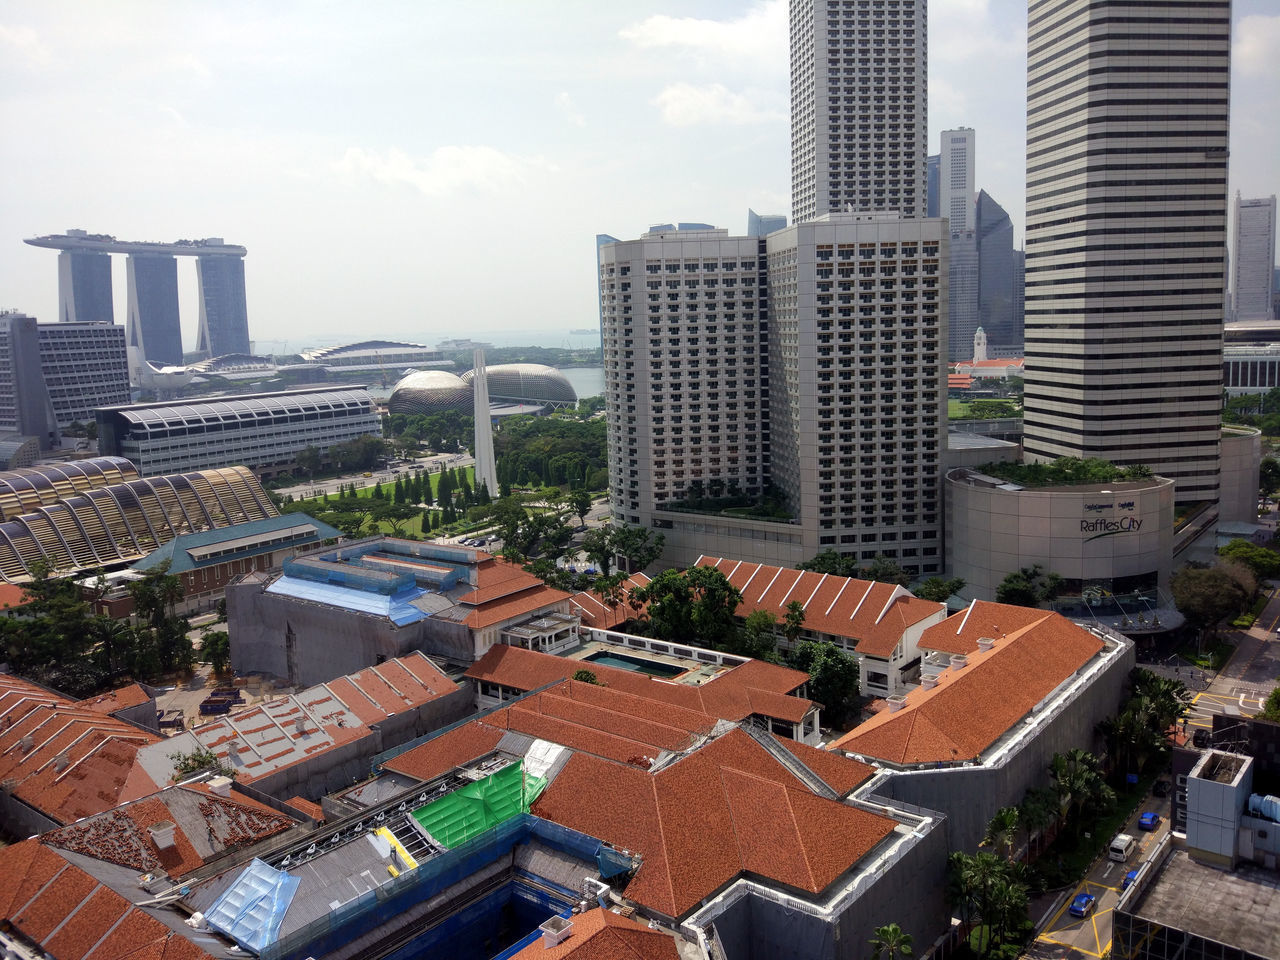 architecture, building exterior, skyscraper, cityscape, city, built structure, high angle view, crowded, development, roof, outdoors, day, modern, aerial view, sky, residential